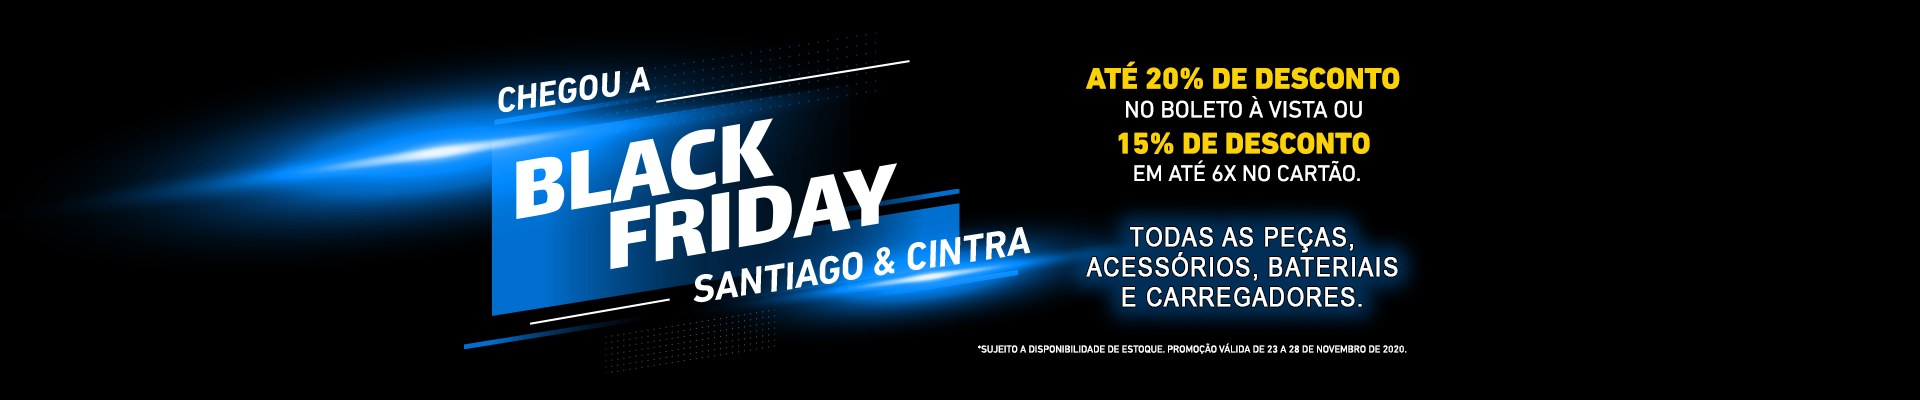 black friday santiago & cintra